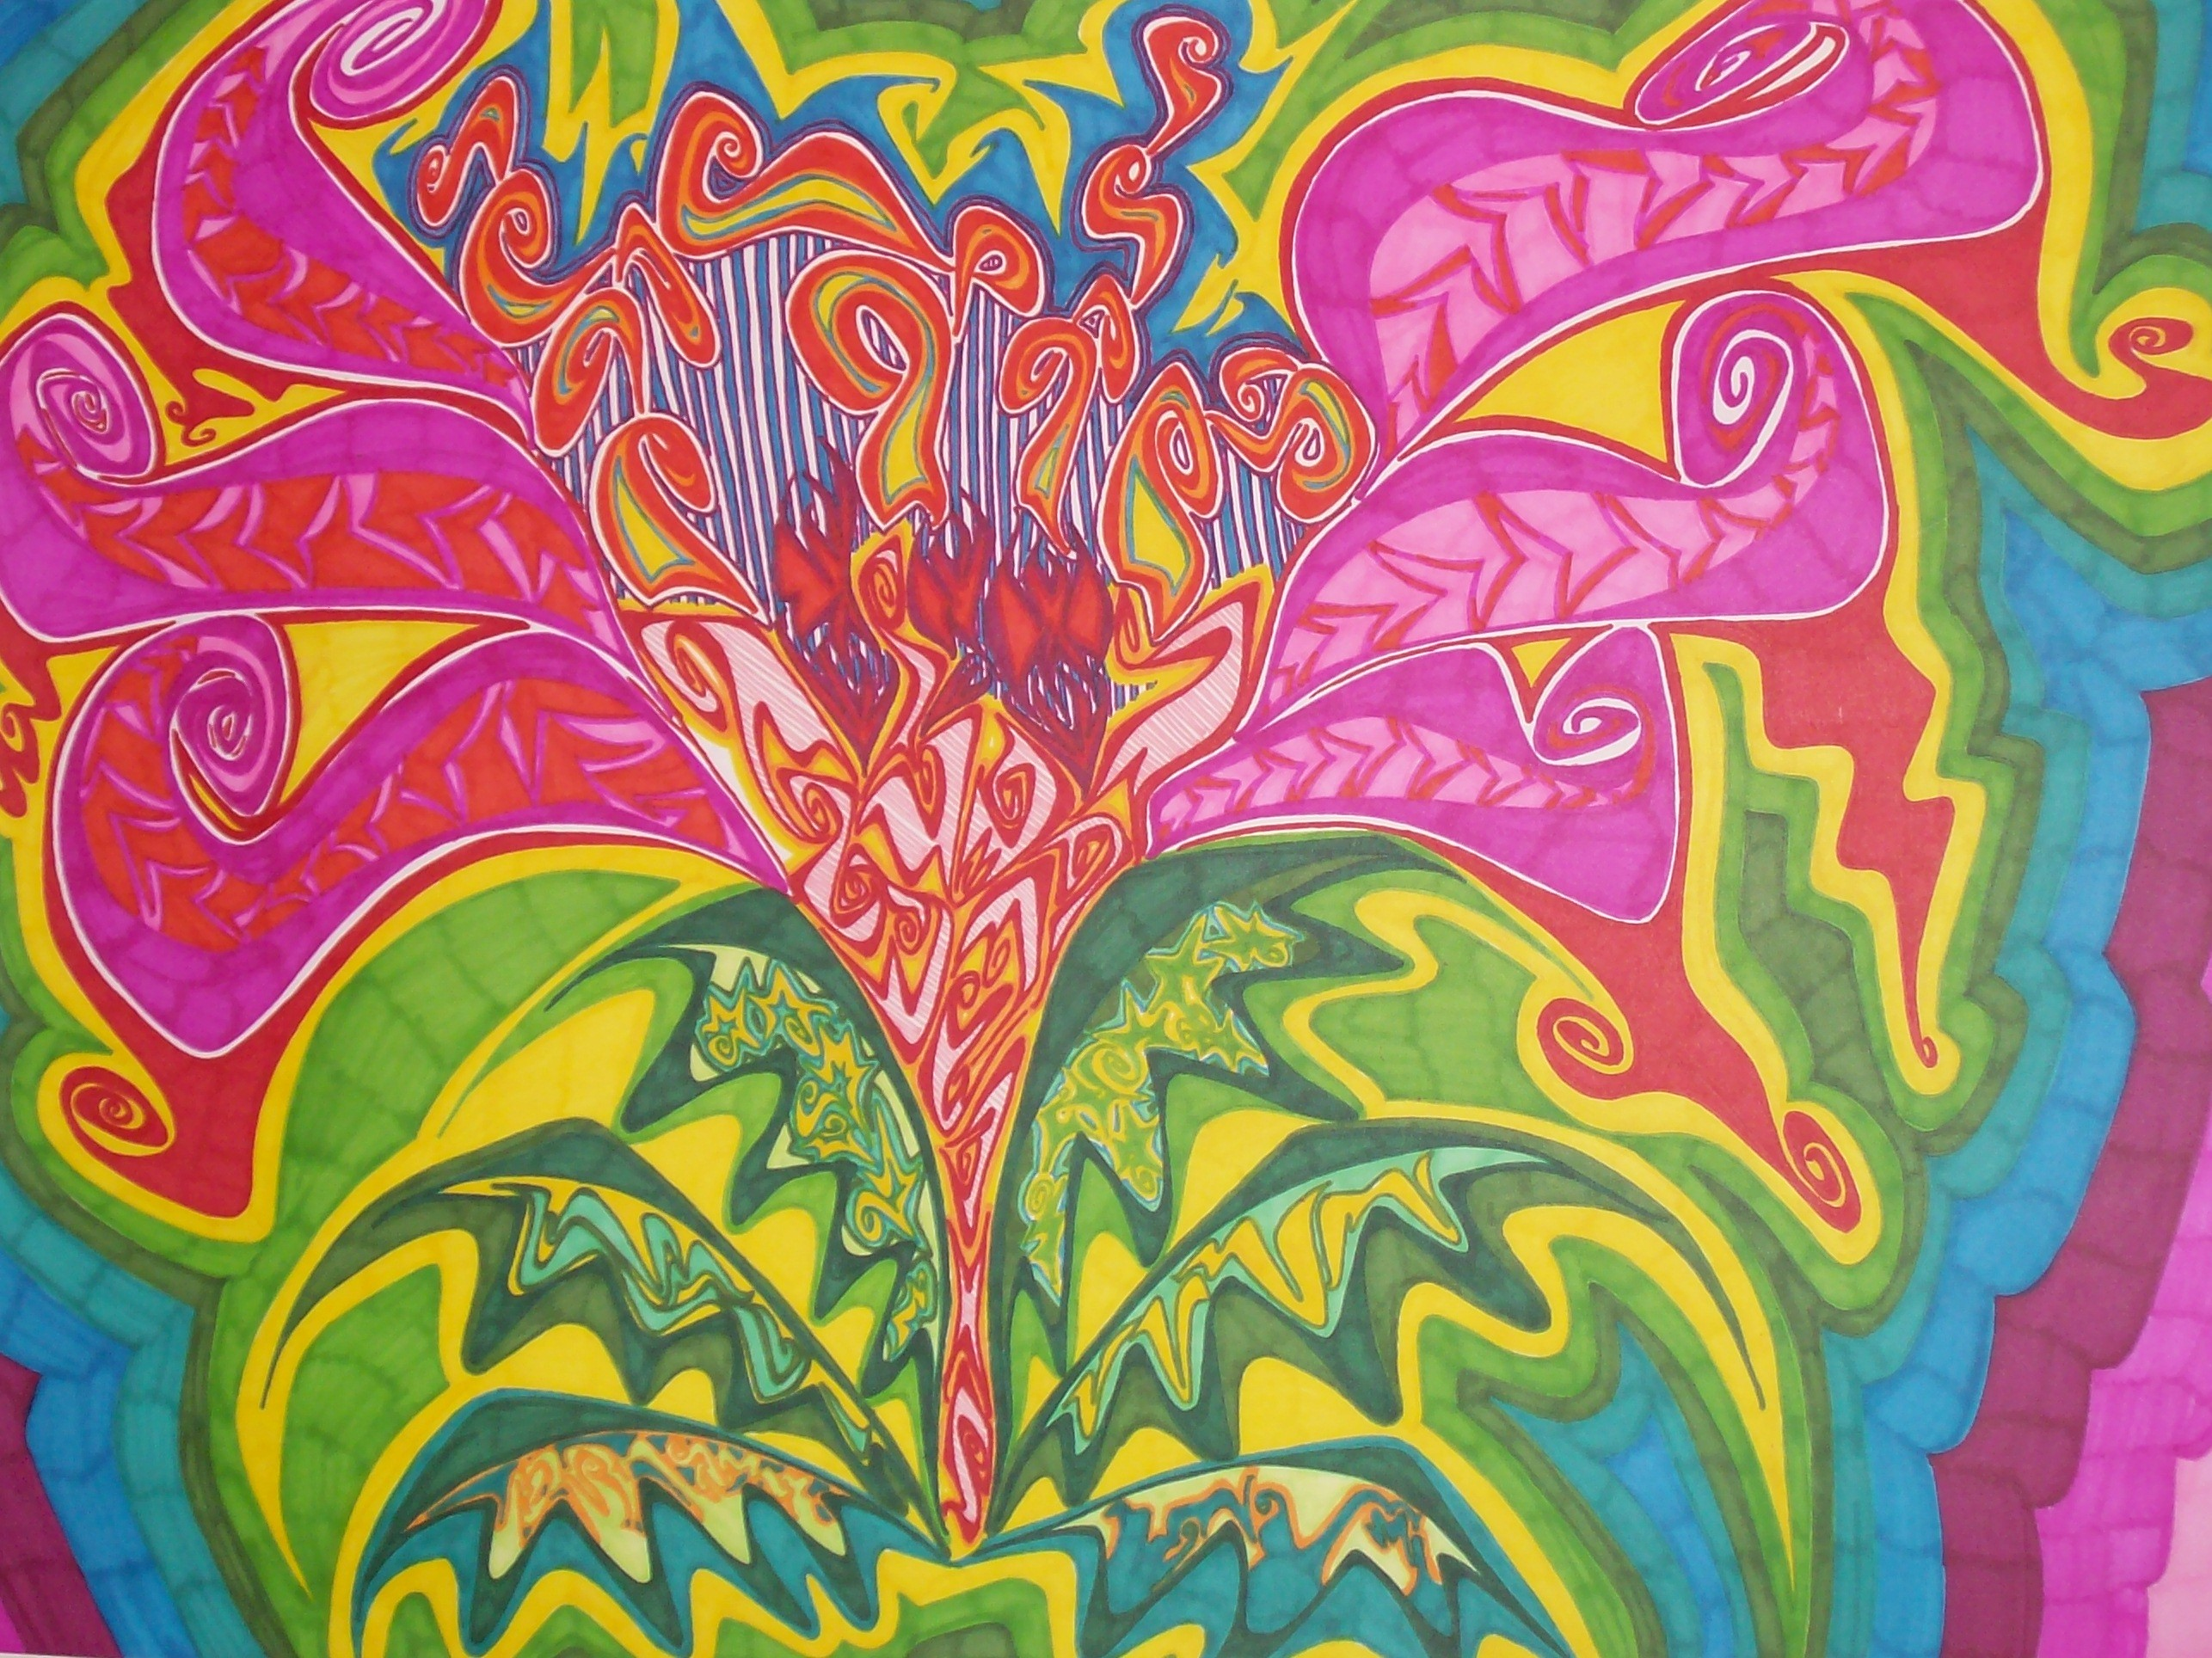 Stoner Wallpaper Trippy Images & Pictures – Becuo